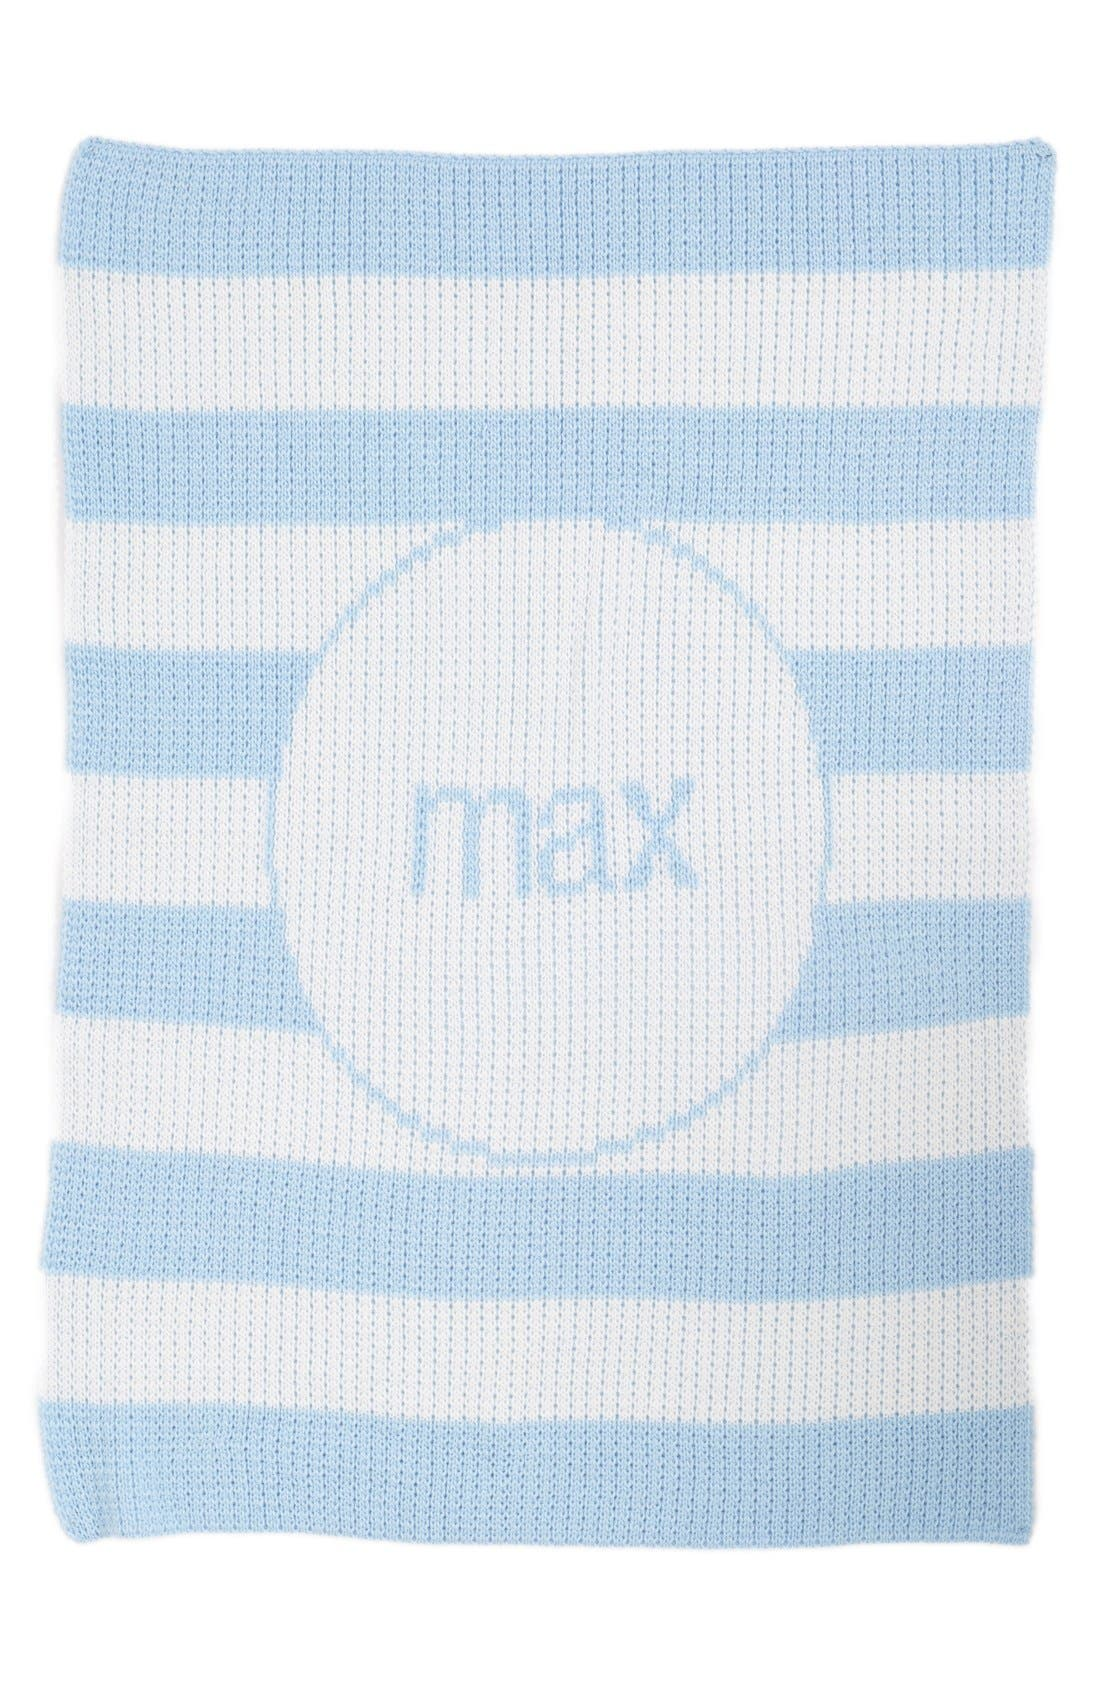 'Modern Stripe' Personalized Stroller Blanket,                             Main thumbnail 1, color,                             White/ Pale Blue